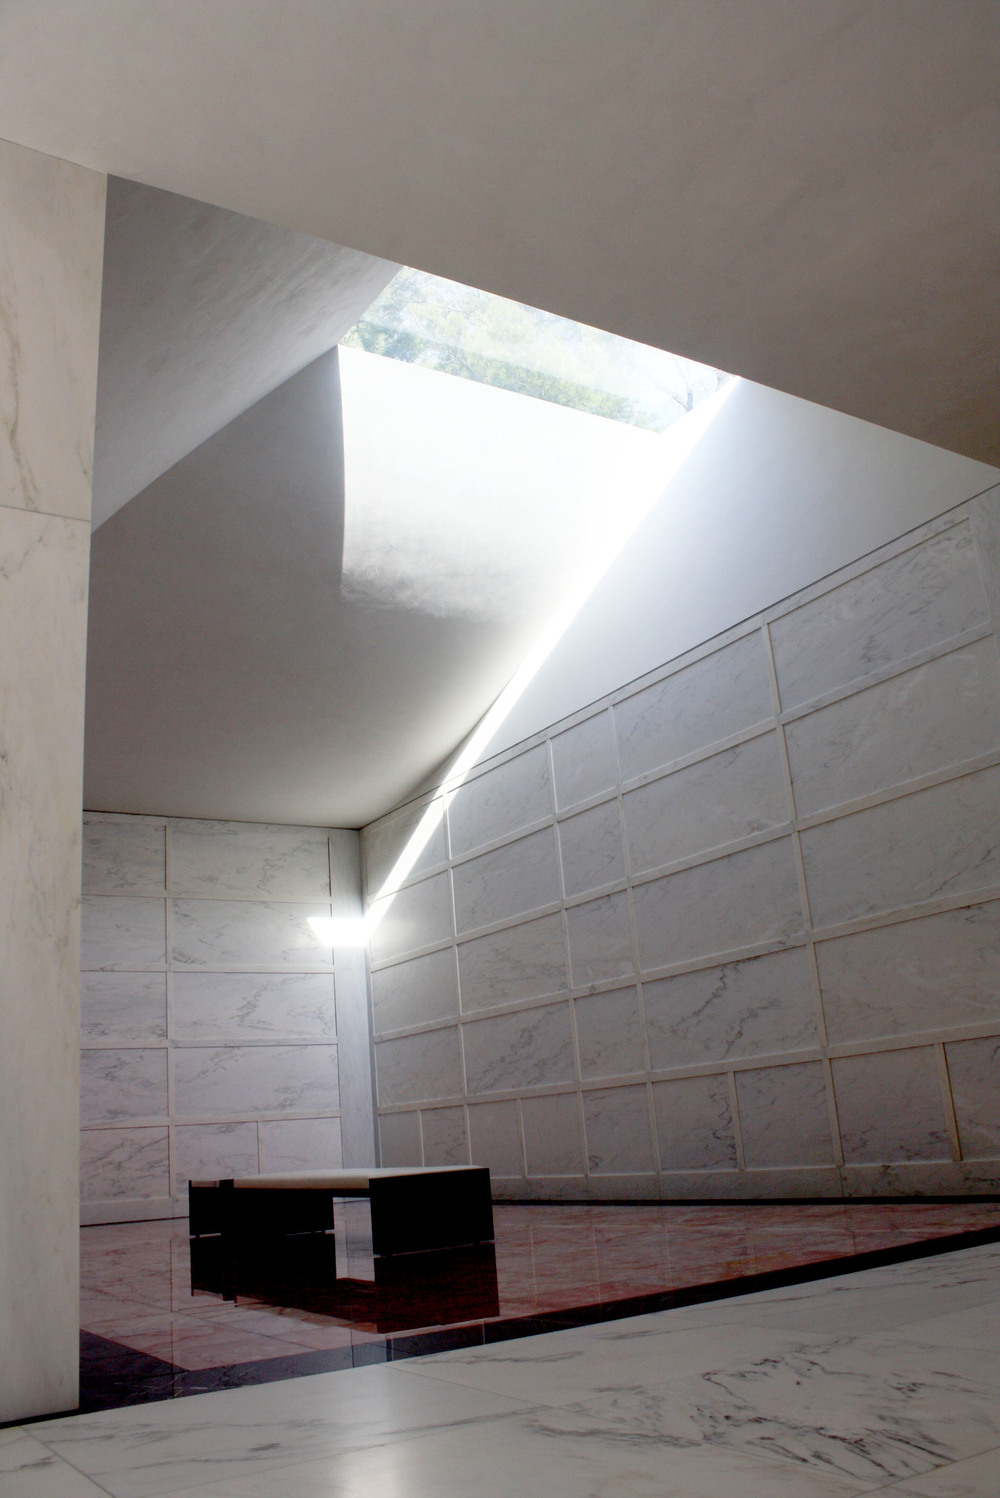 The Architecture's Not Dead: Lakewood Cemetery in Minneapolis via The Midwestival